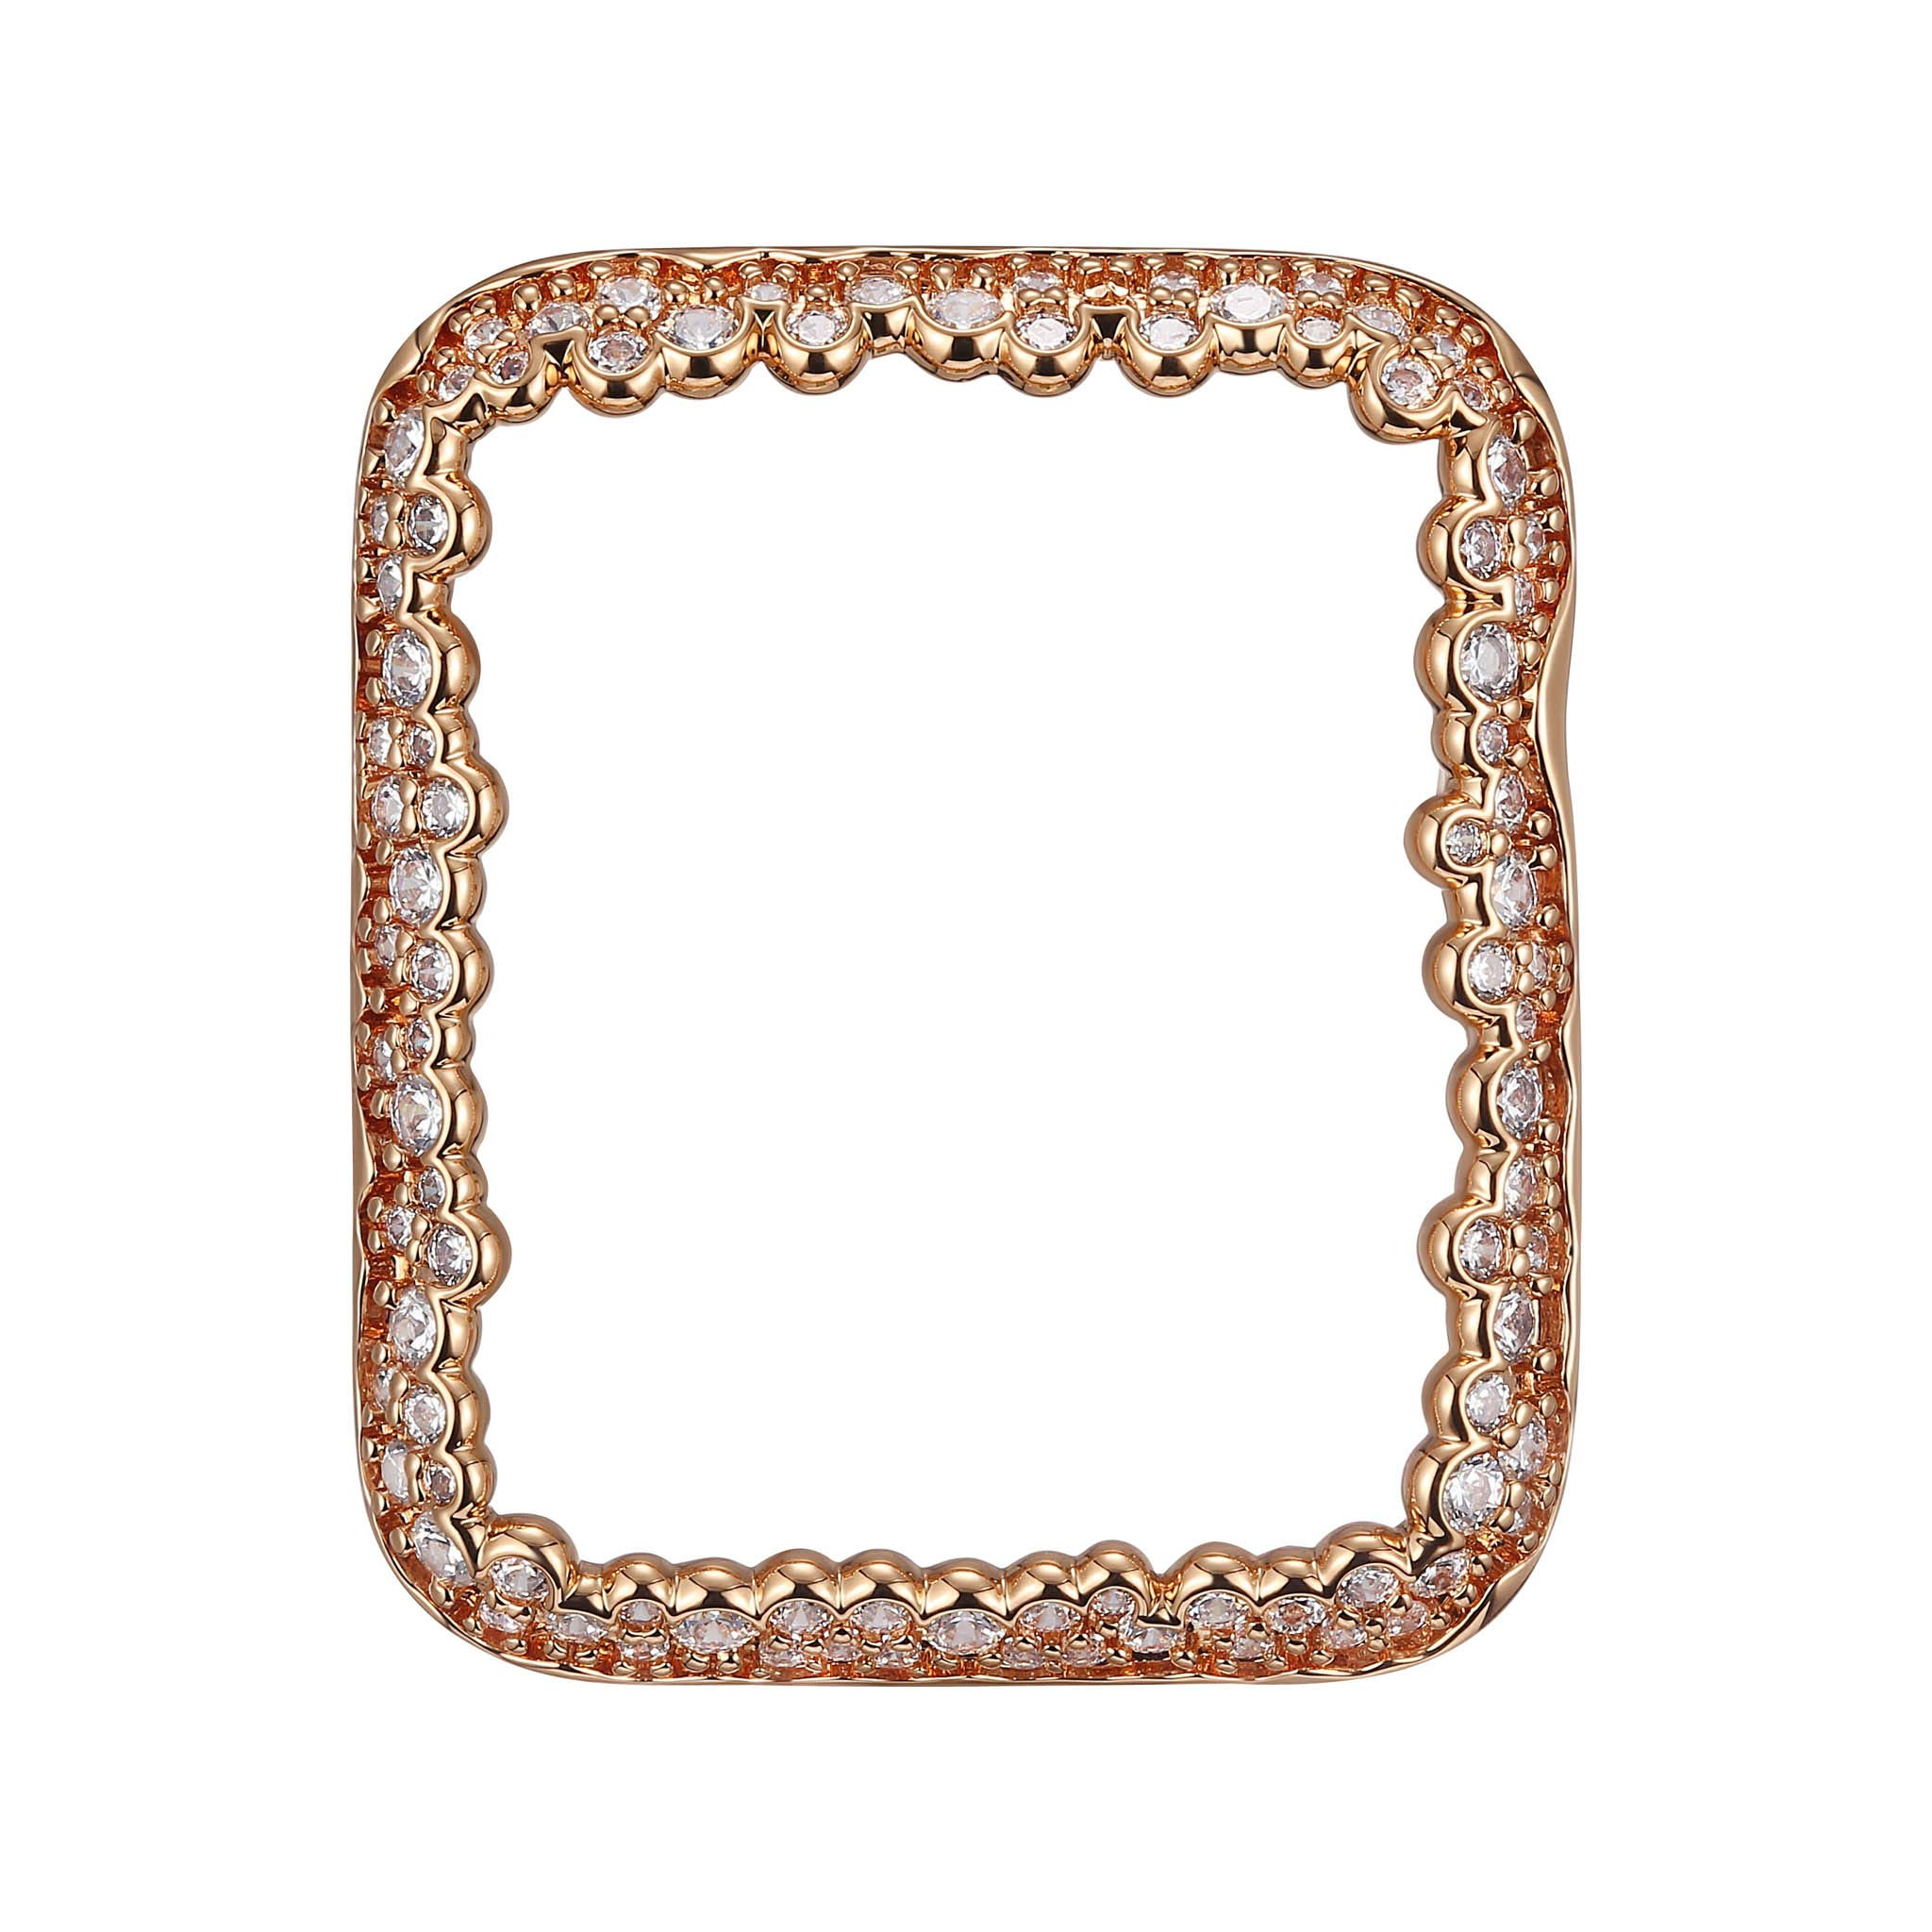 14K Rose Gold Plated Champagne Bubbles Jewelry-Style Apple Watch Case with Swarovski Zirconia CZ Border - Small (Fits 38mm iWatch)